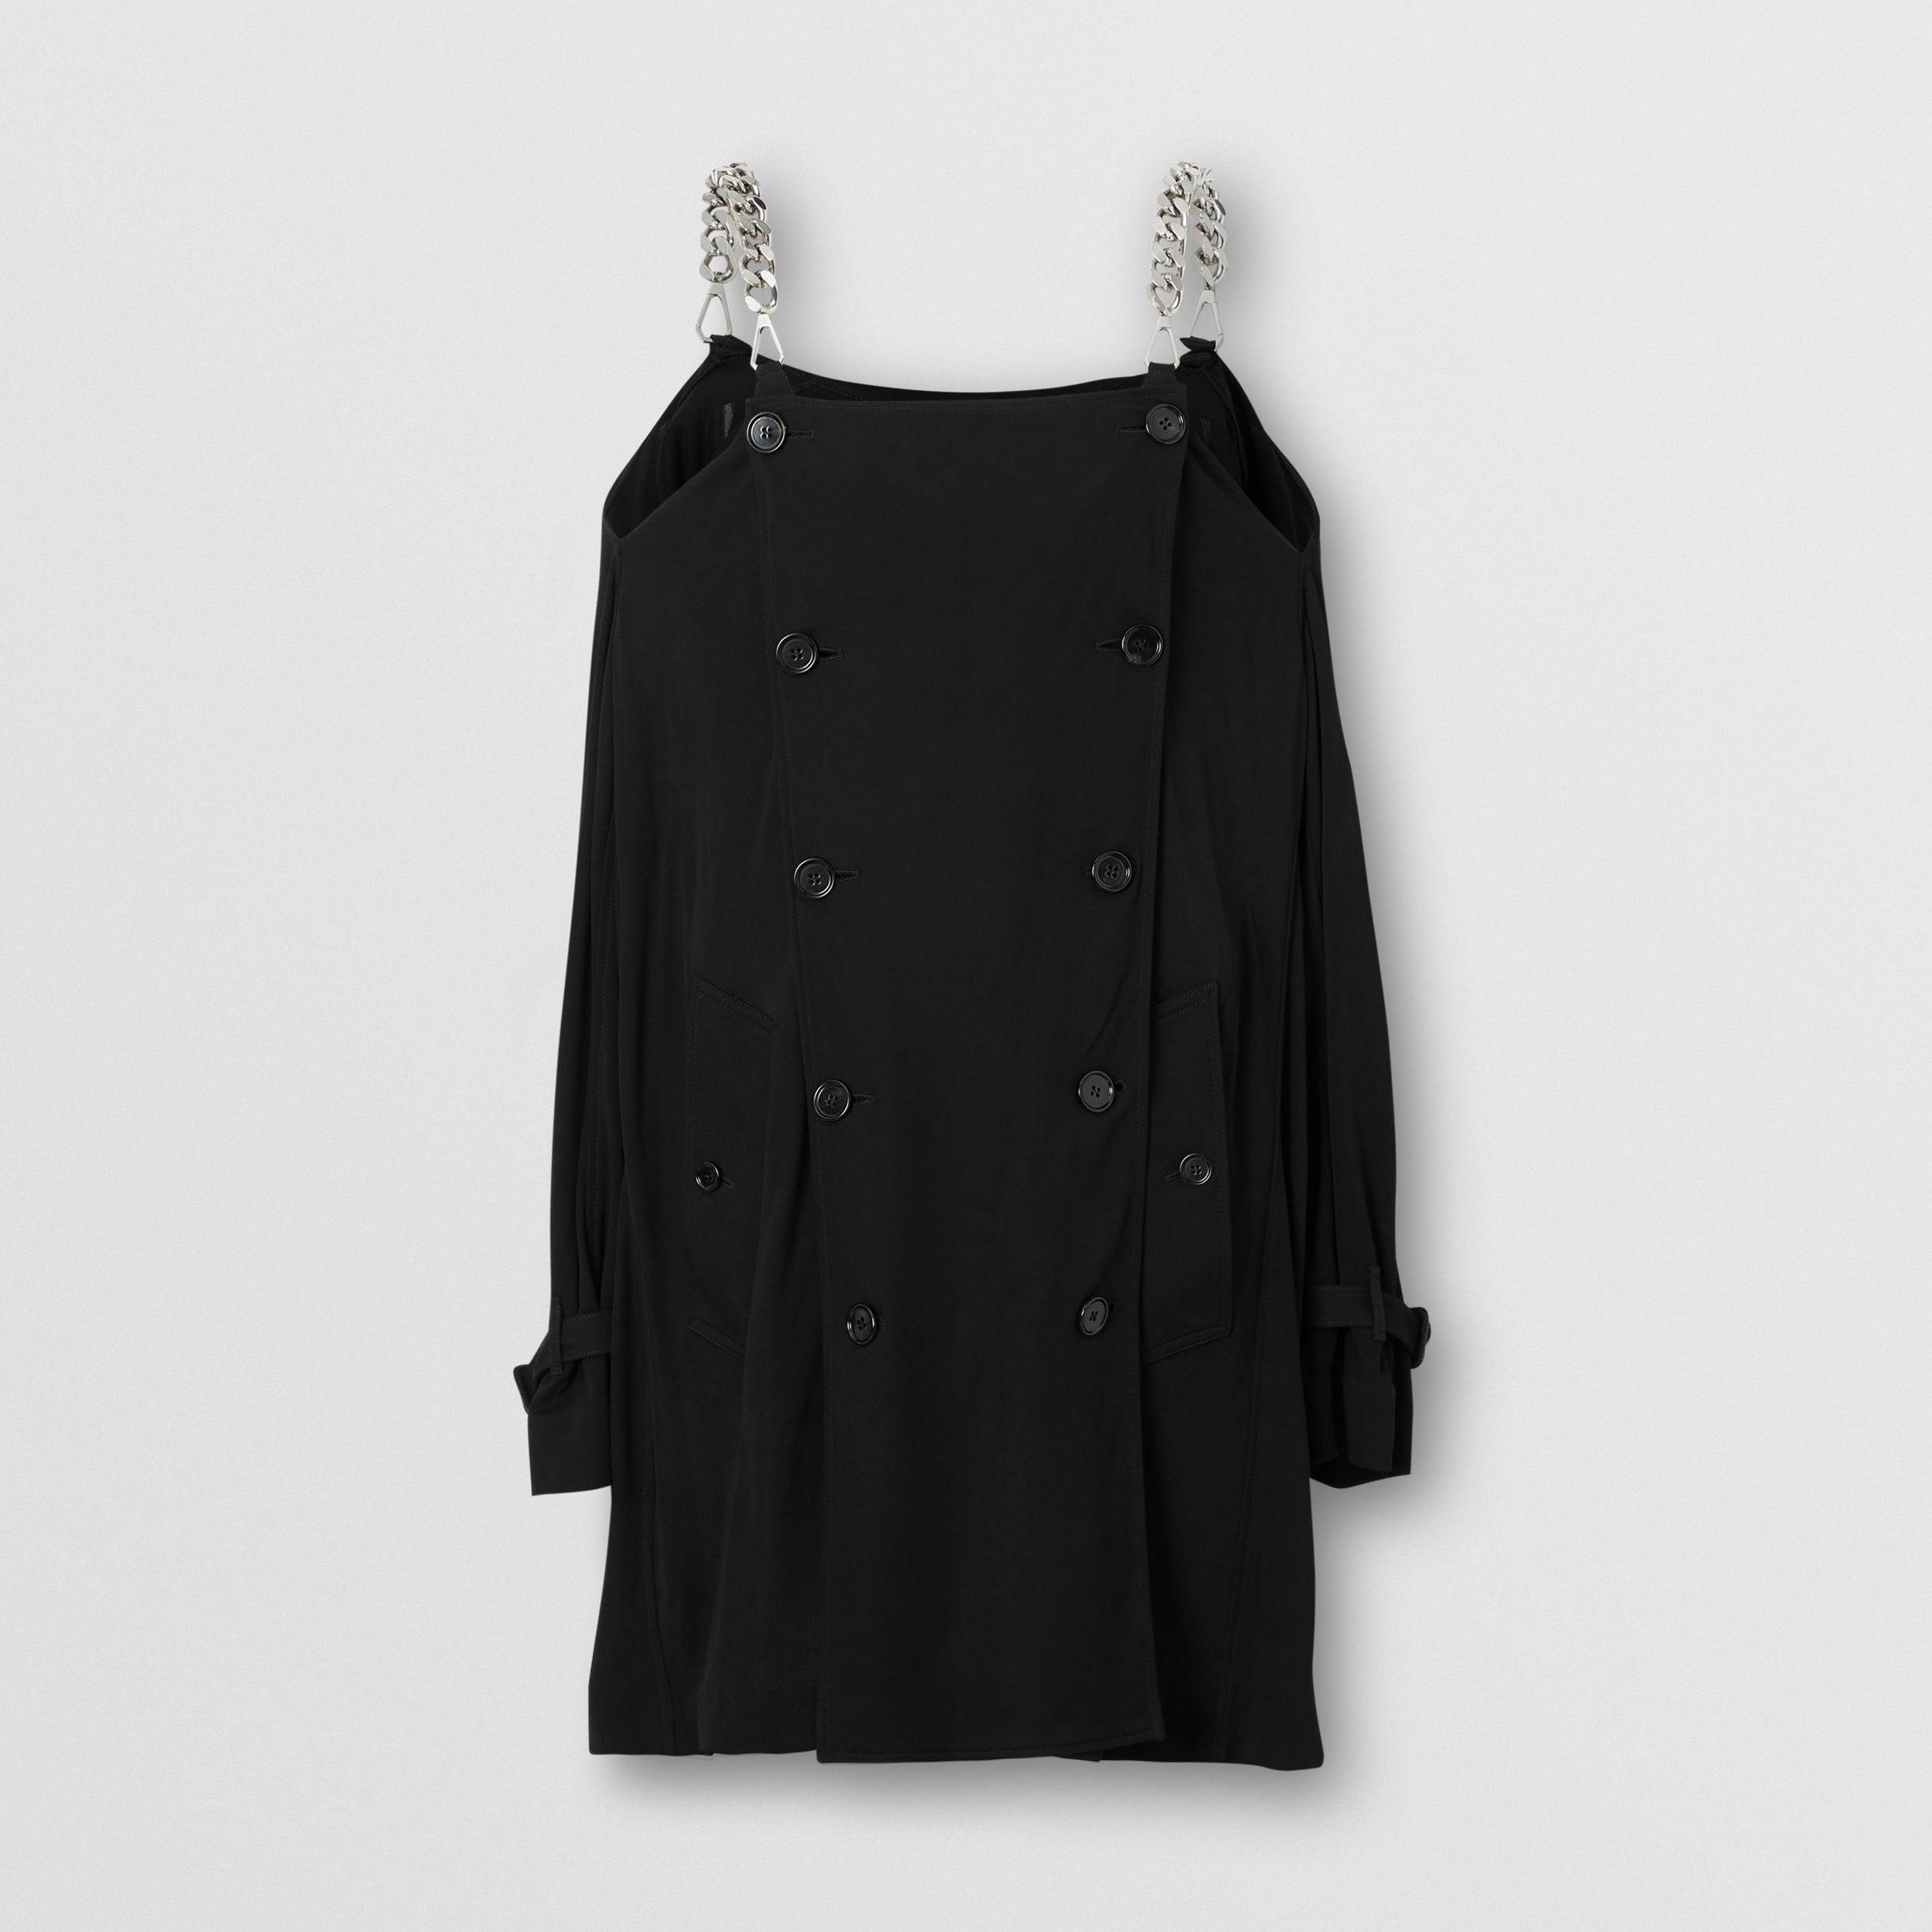 Deconstructed Crepe Trench Coat Dress in Black - Women | Burberry - 3